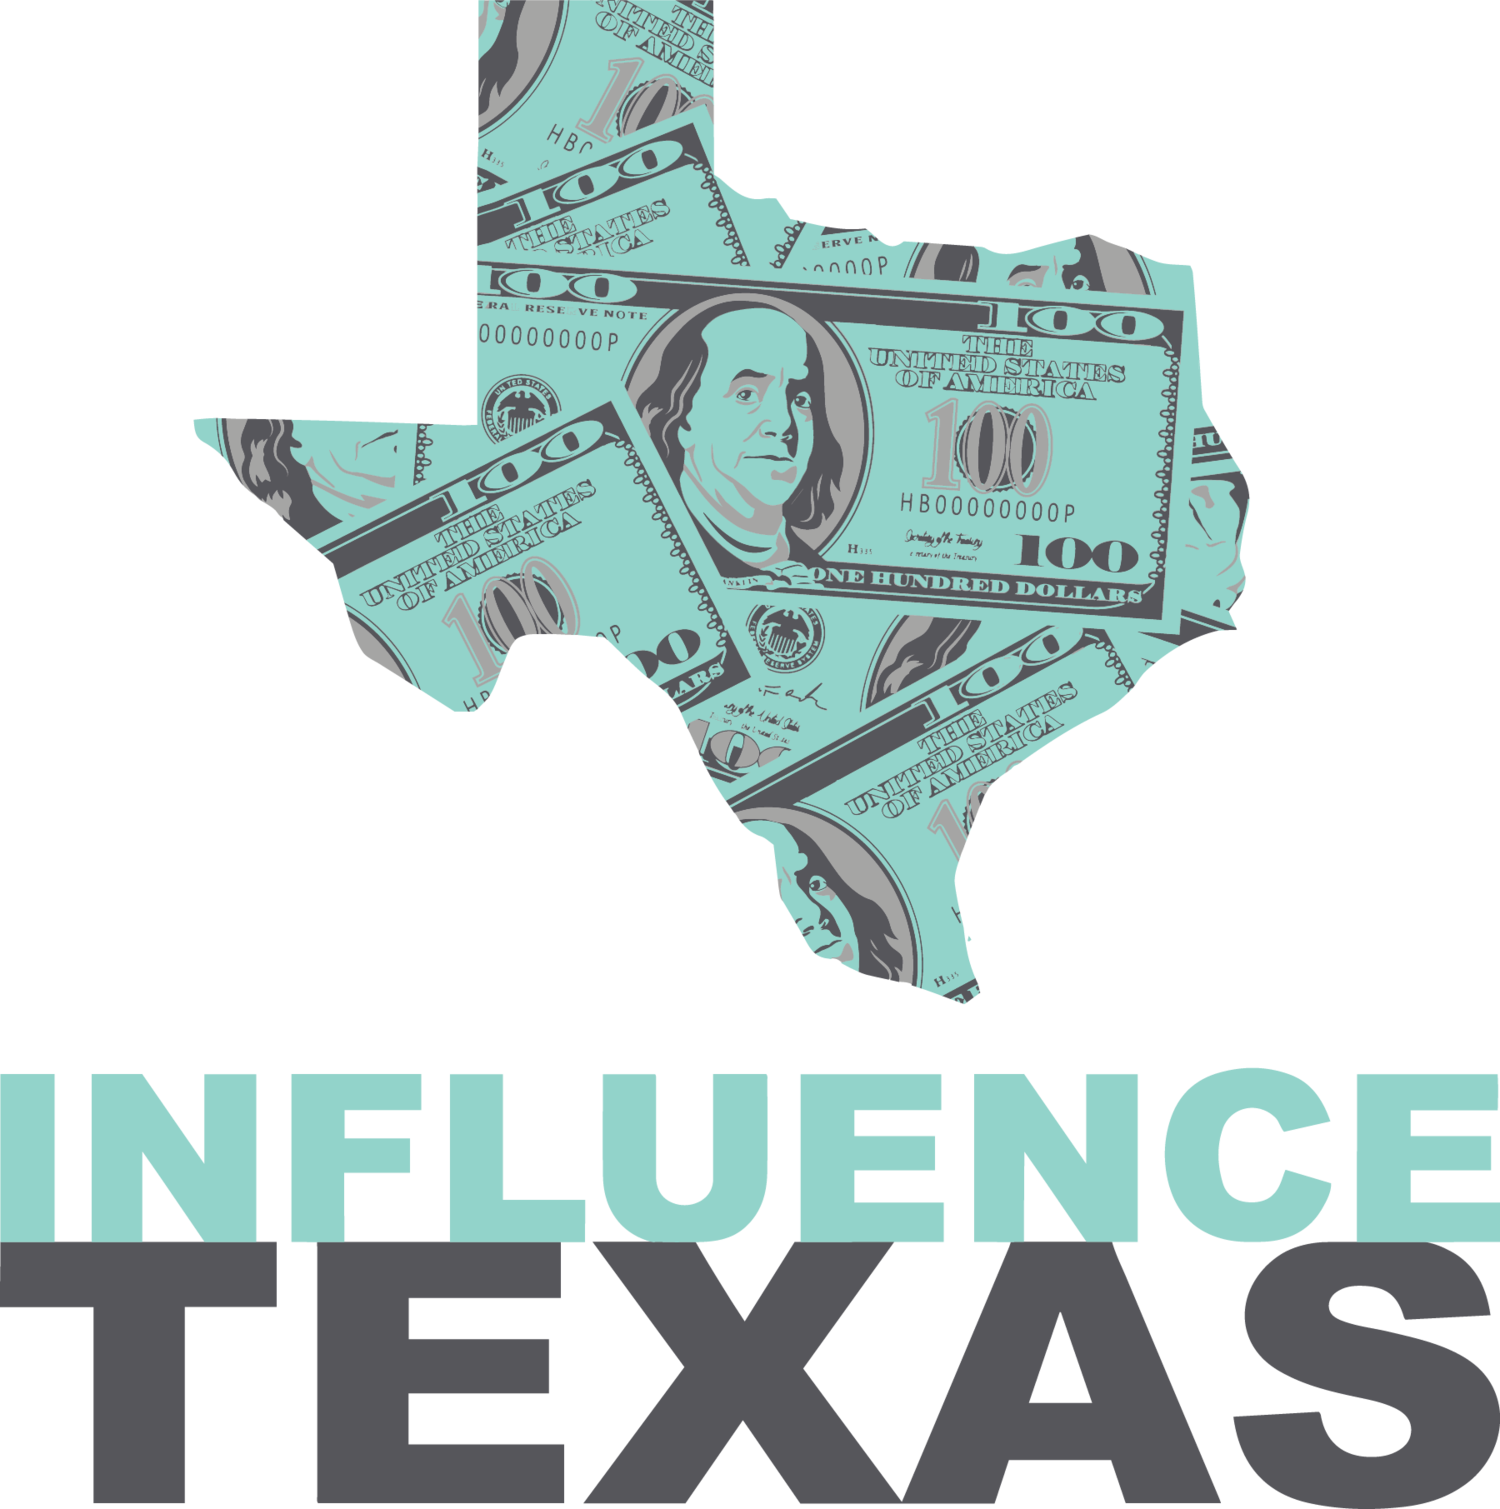 INFLUENCE TEXAS